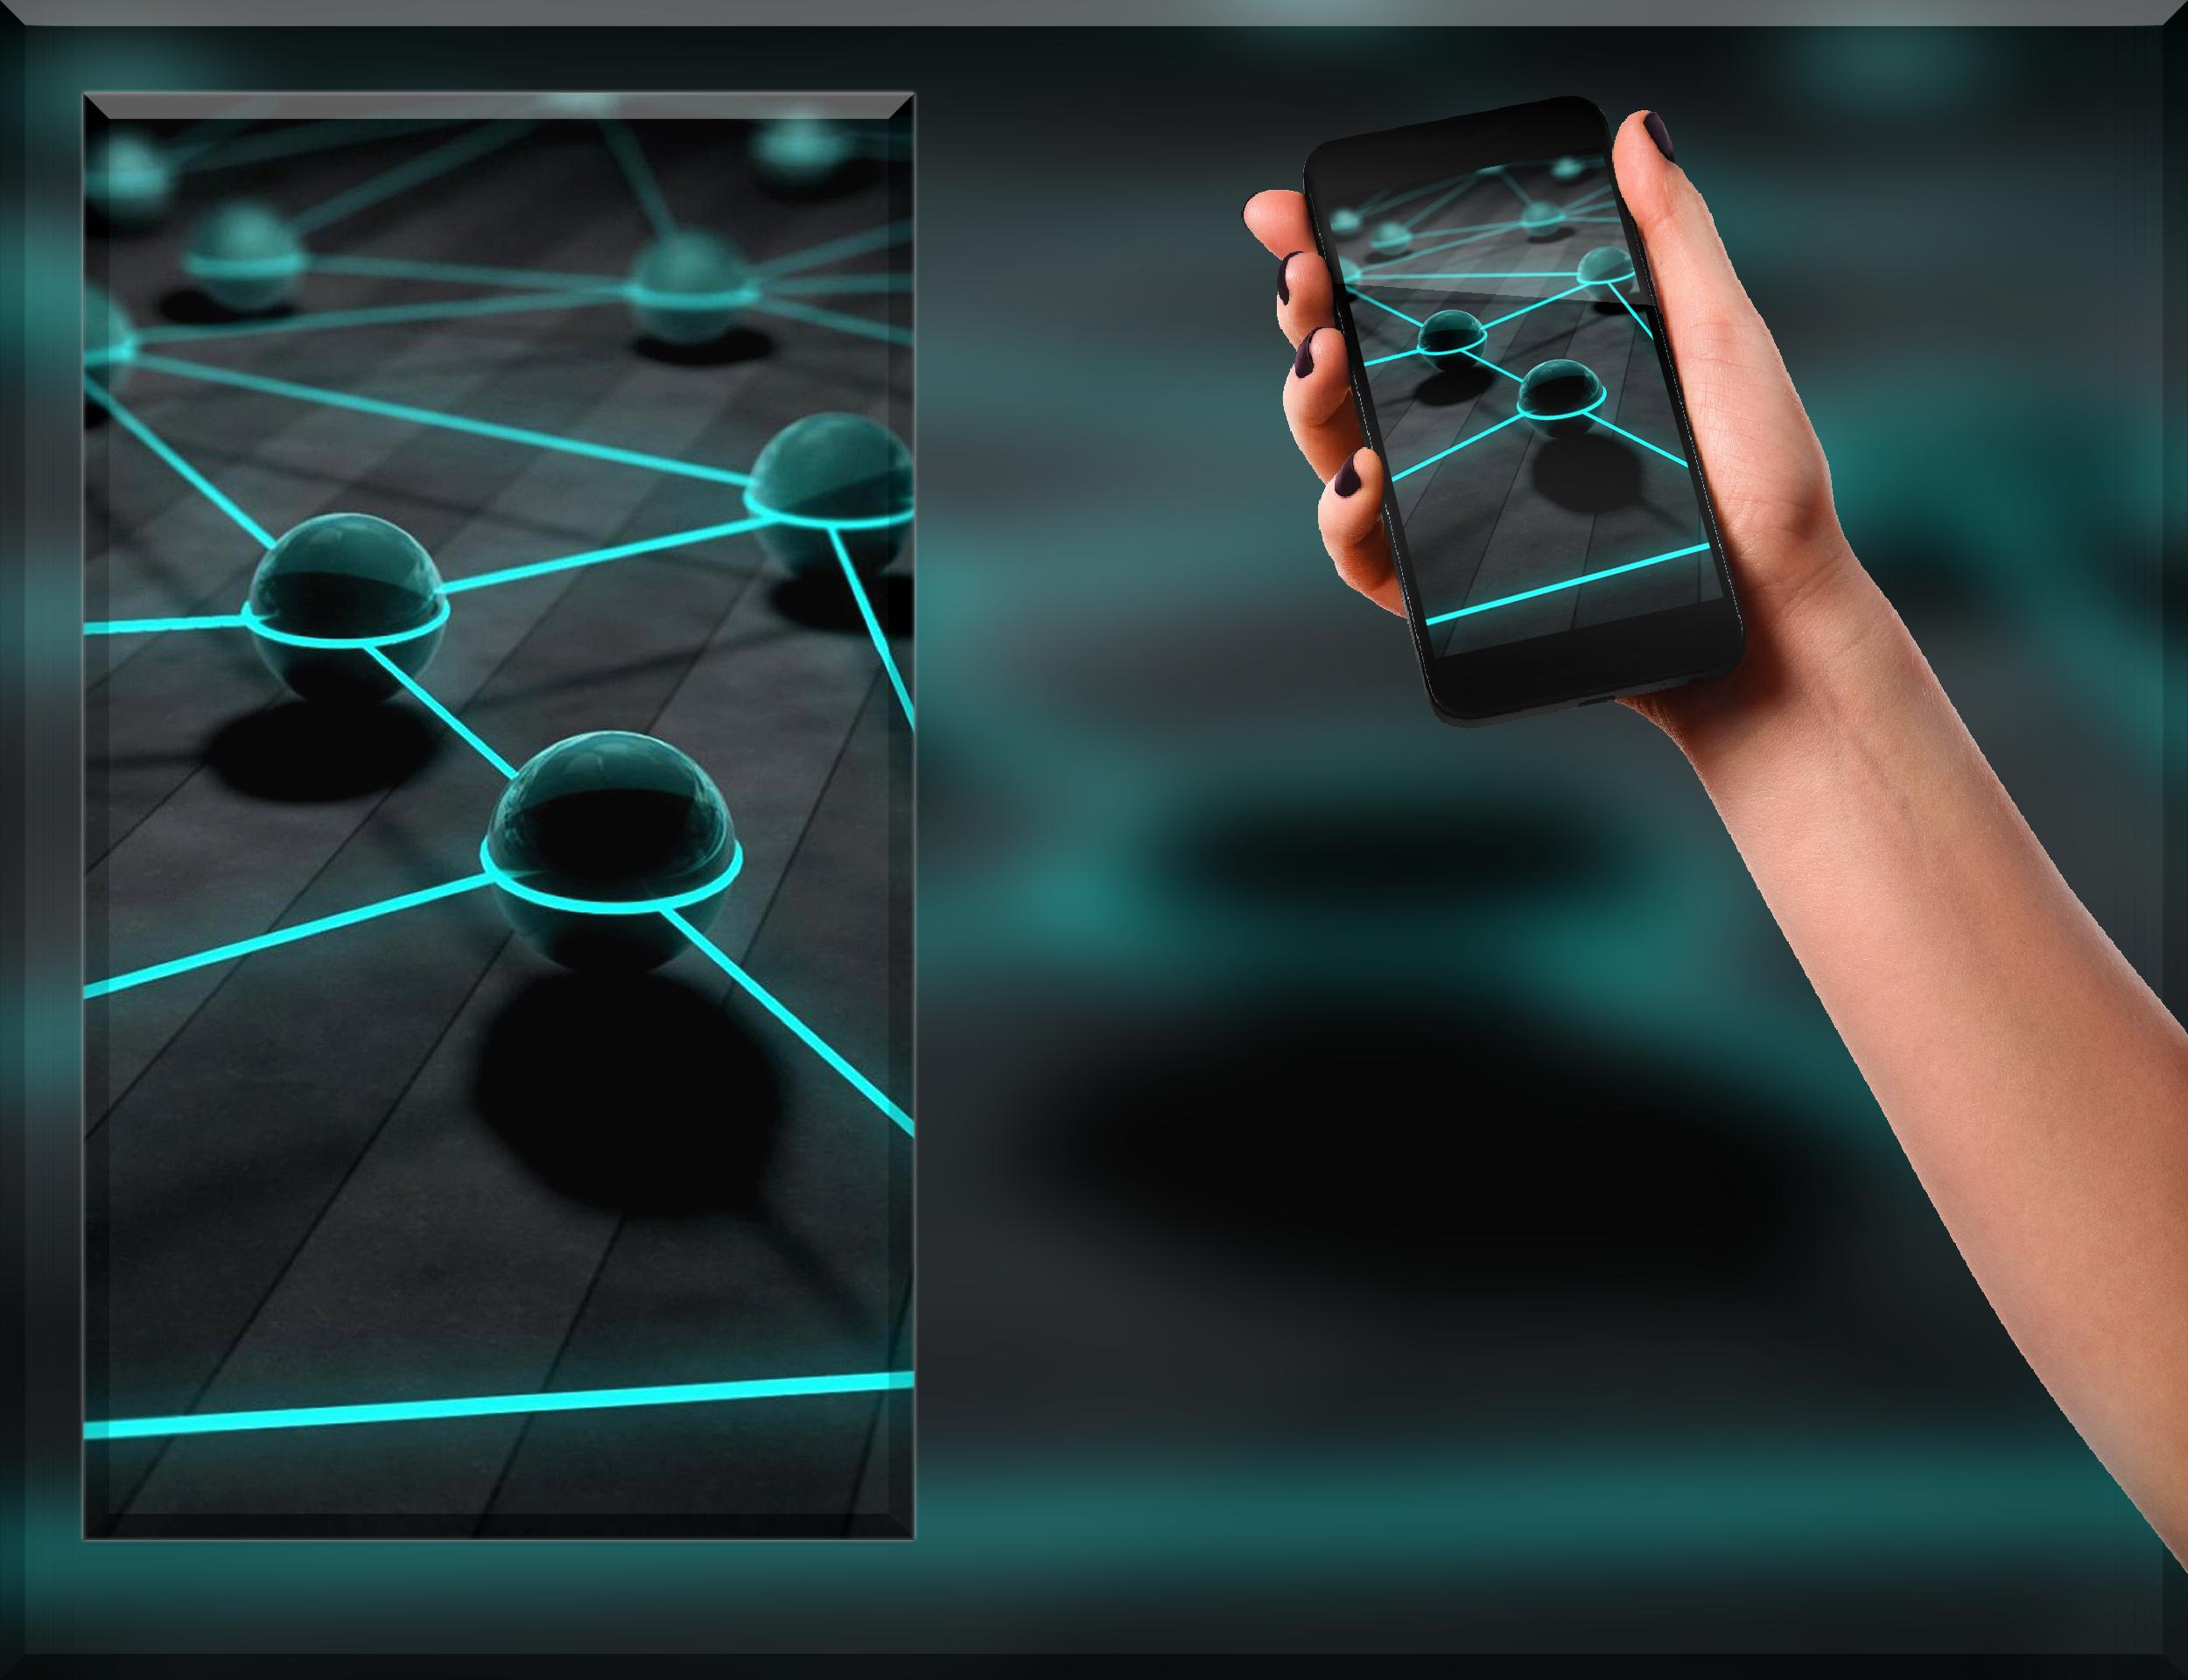 3d Wallpaper Parallax 2018 For Android Apk Download